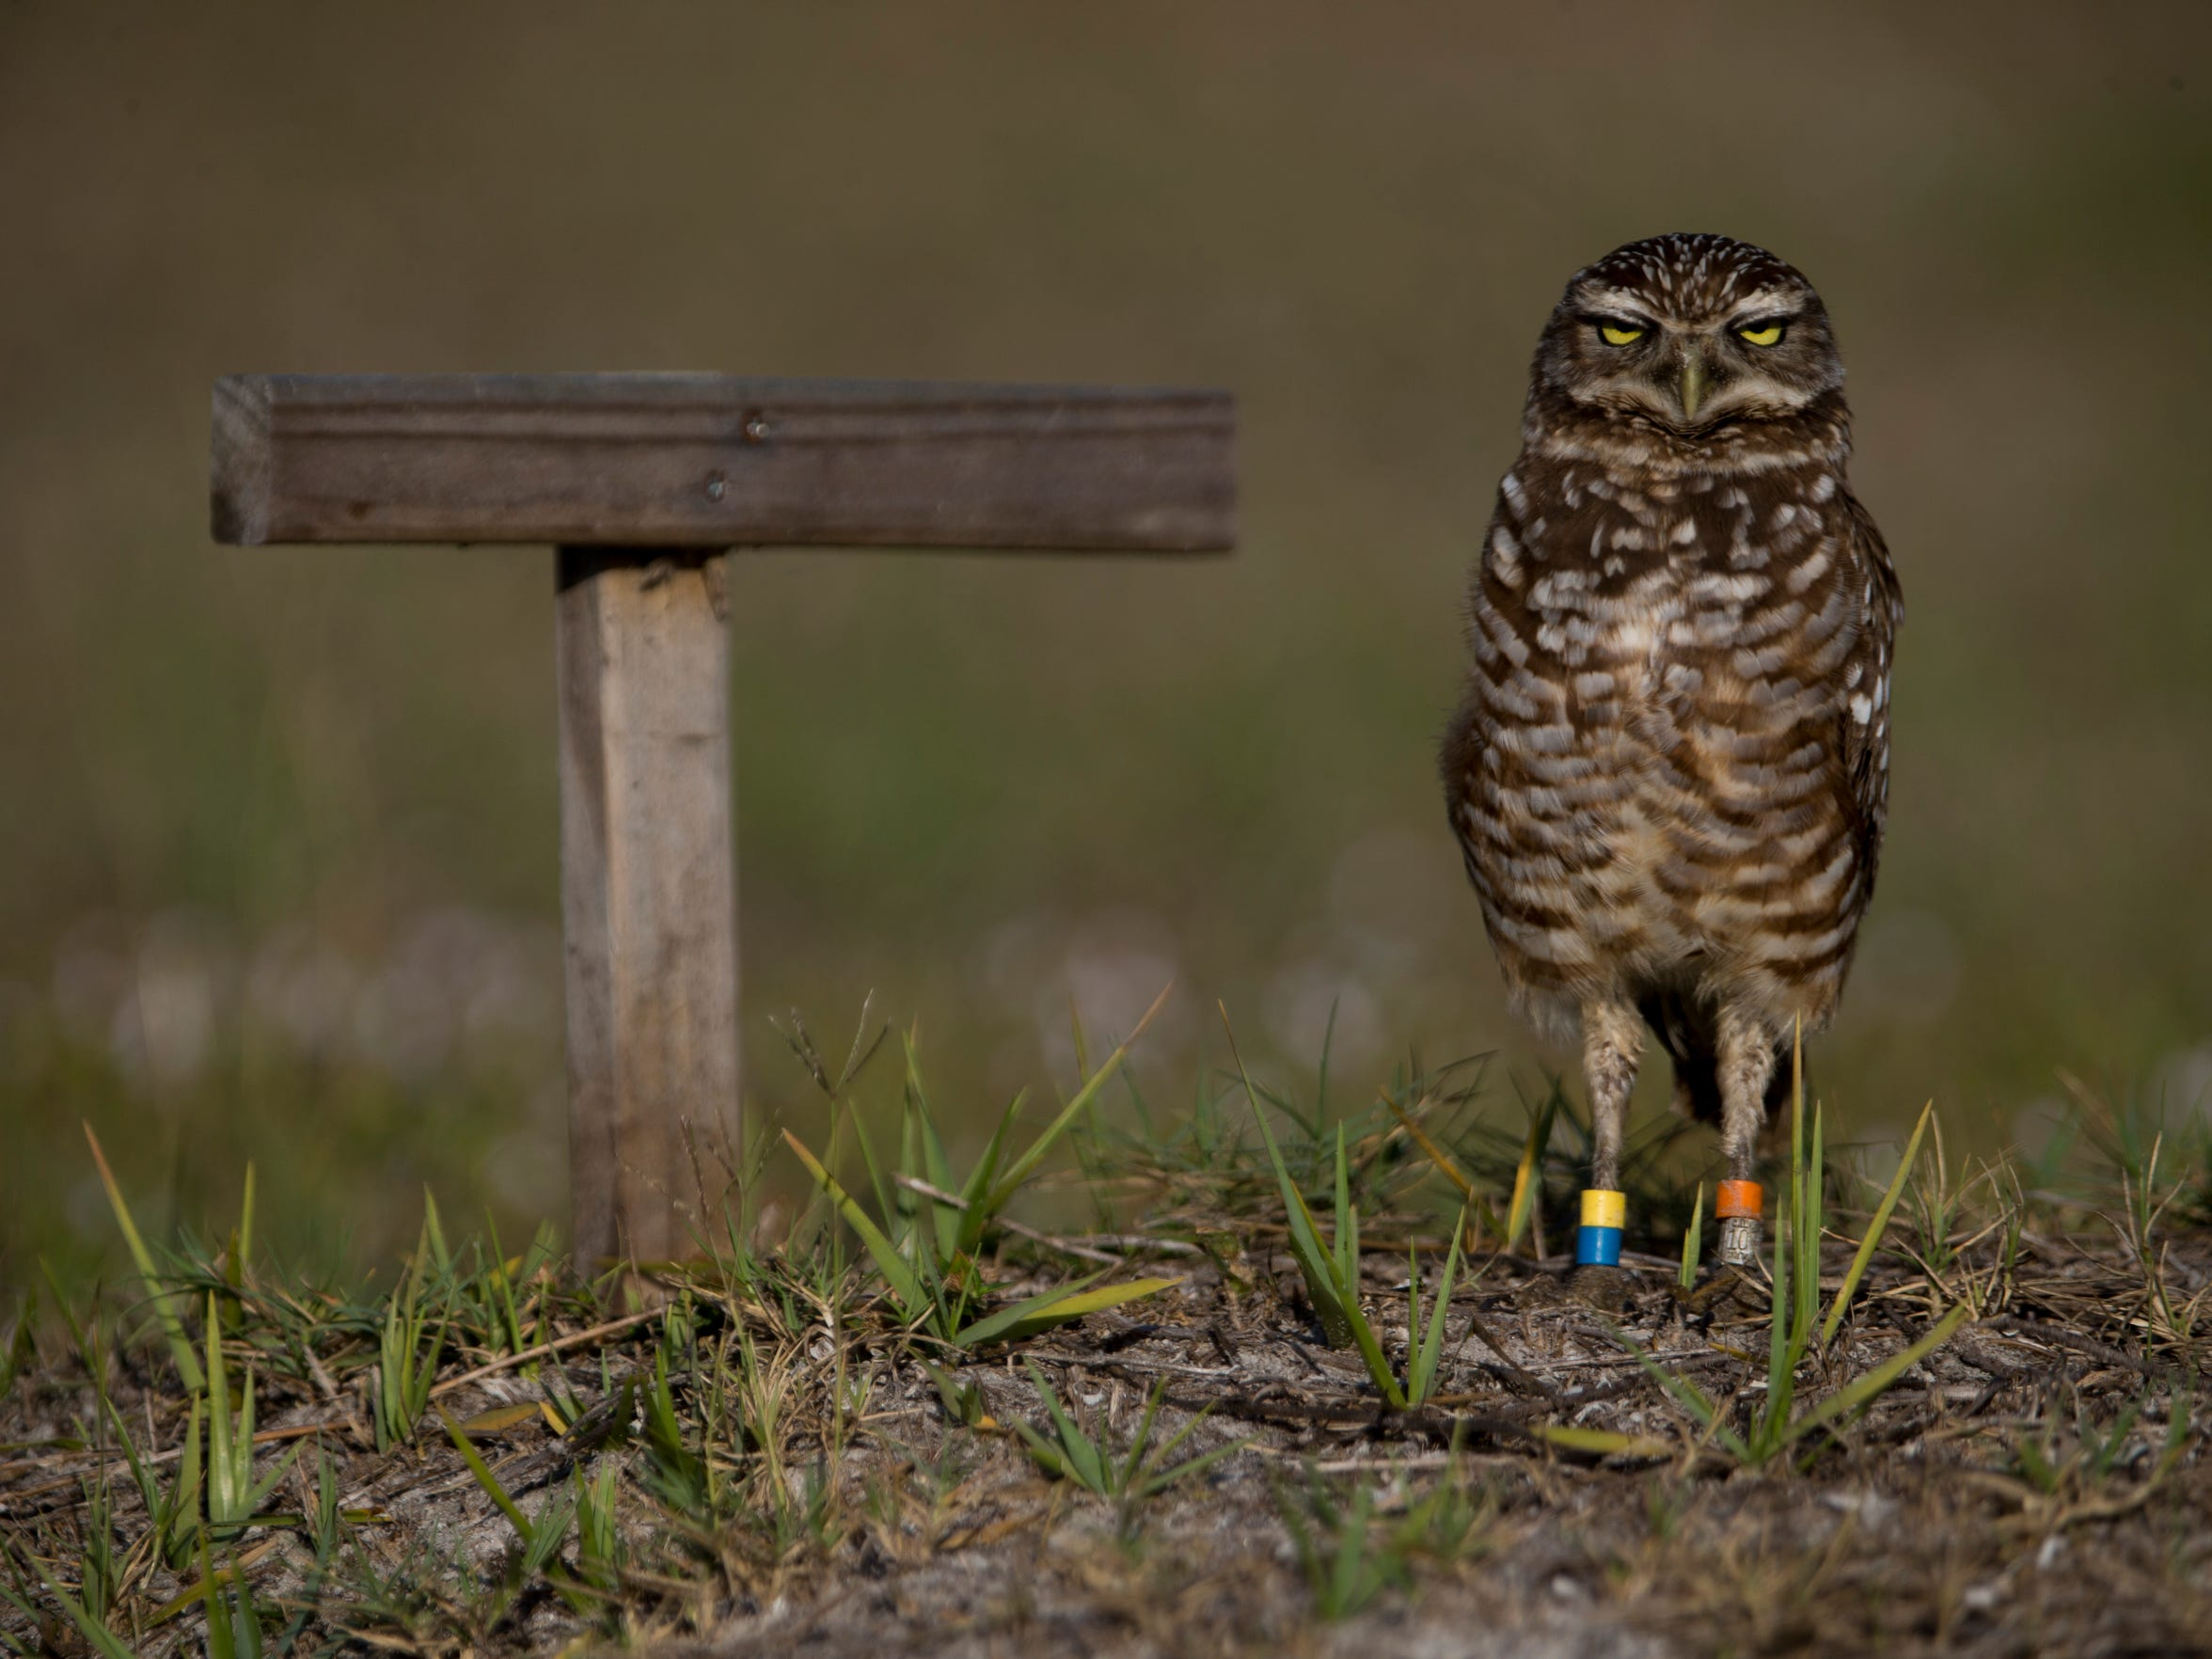 A burrowing owl, with multiple colored bands around its legs, scans its surroundings outside of its burrow Thursday, March 1, 2018 in Marco Island.